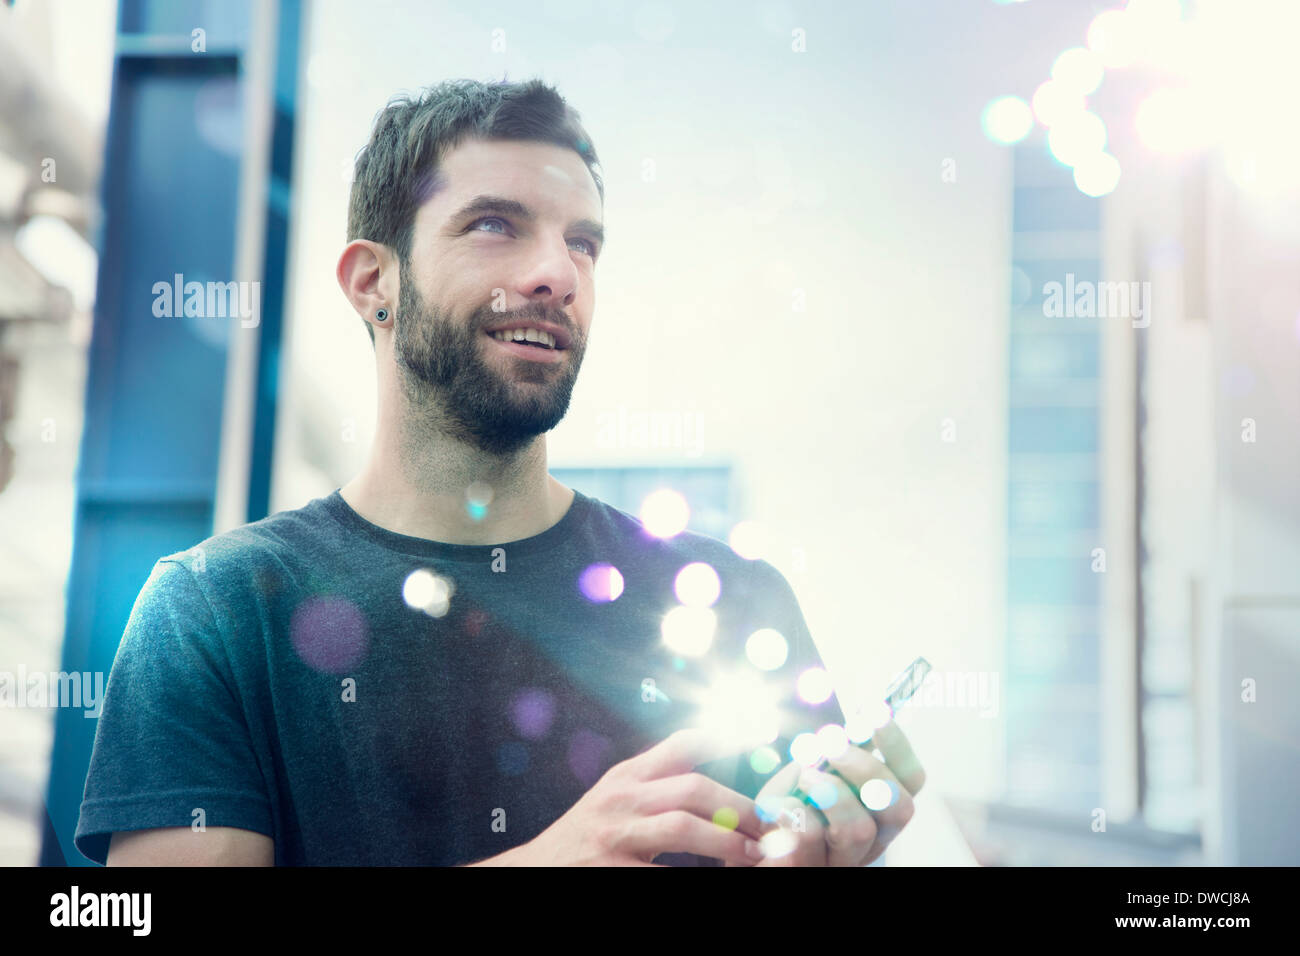 Mid adult man looking up at lights coming from smartphone - Stock Image